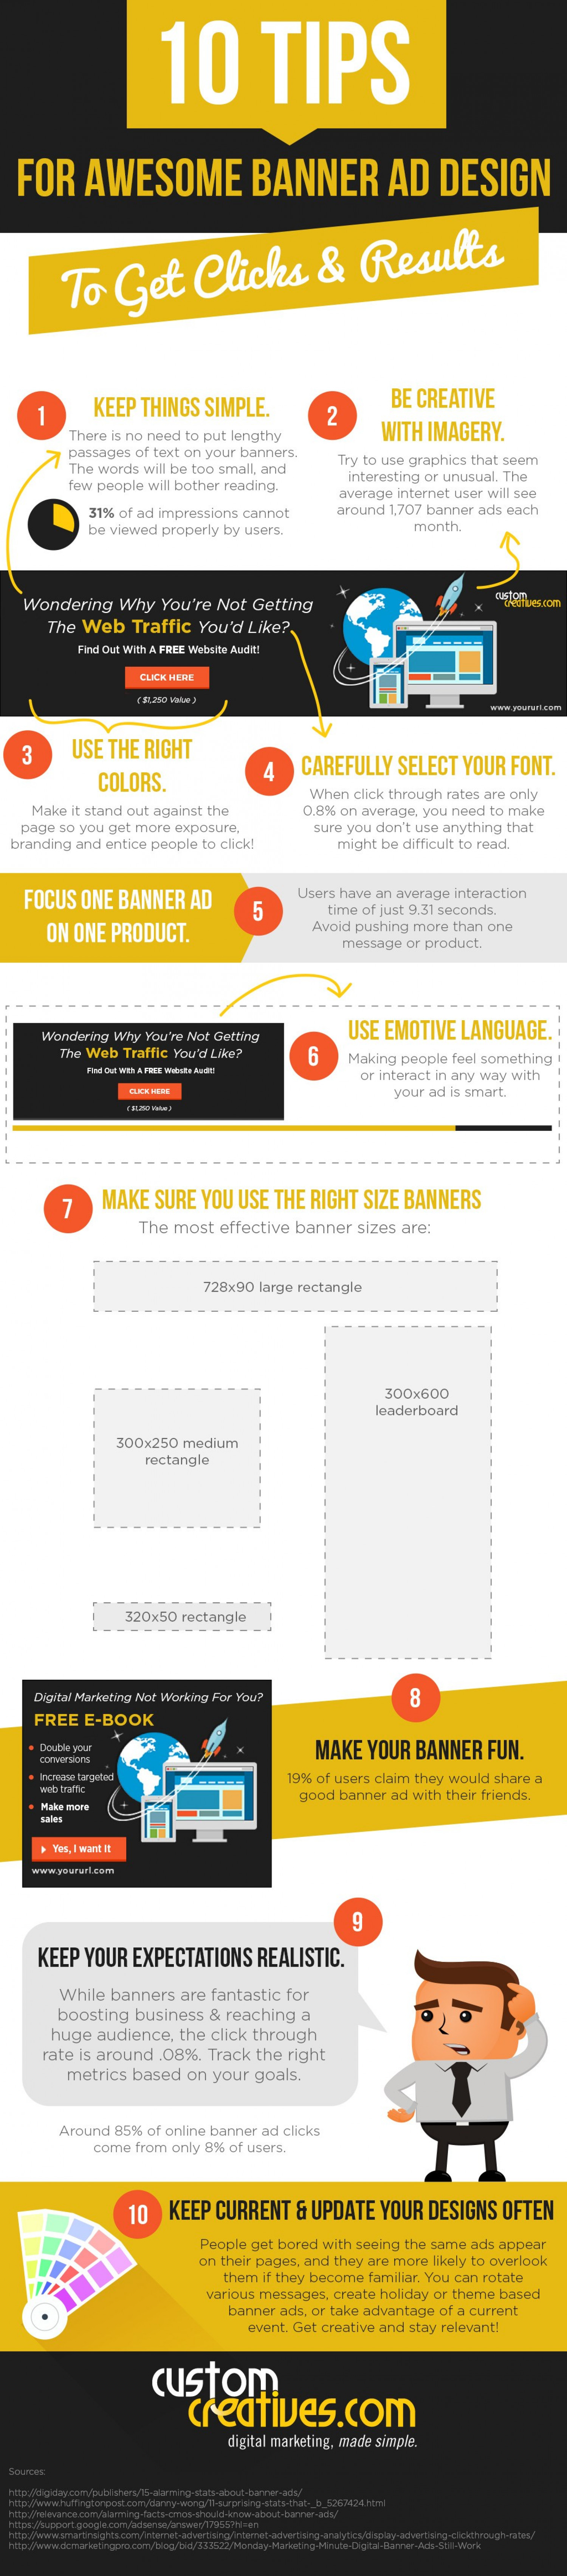 INFOGRAPHIC: 10 Tips for Awesome Banner Ad Design to Get Clicks & Results Infographic